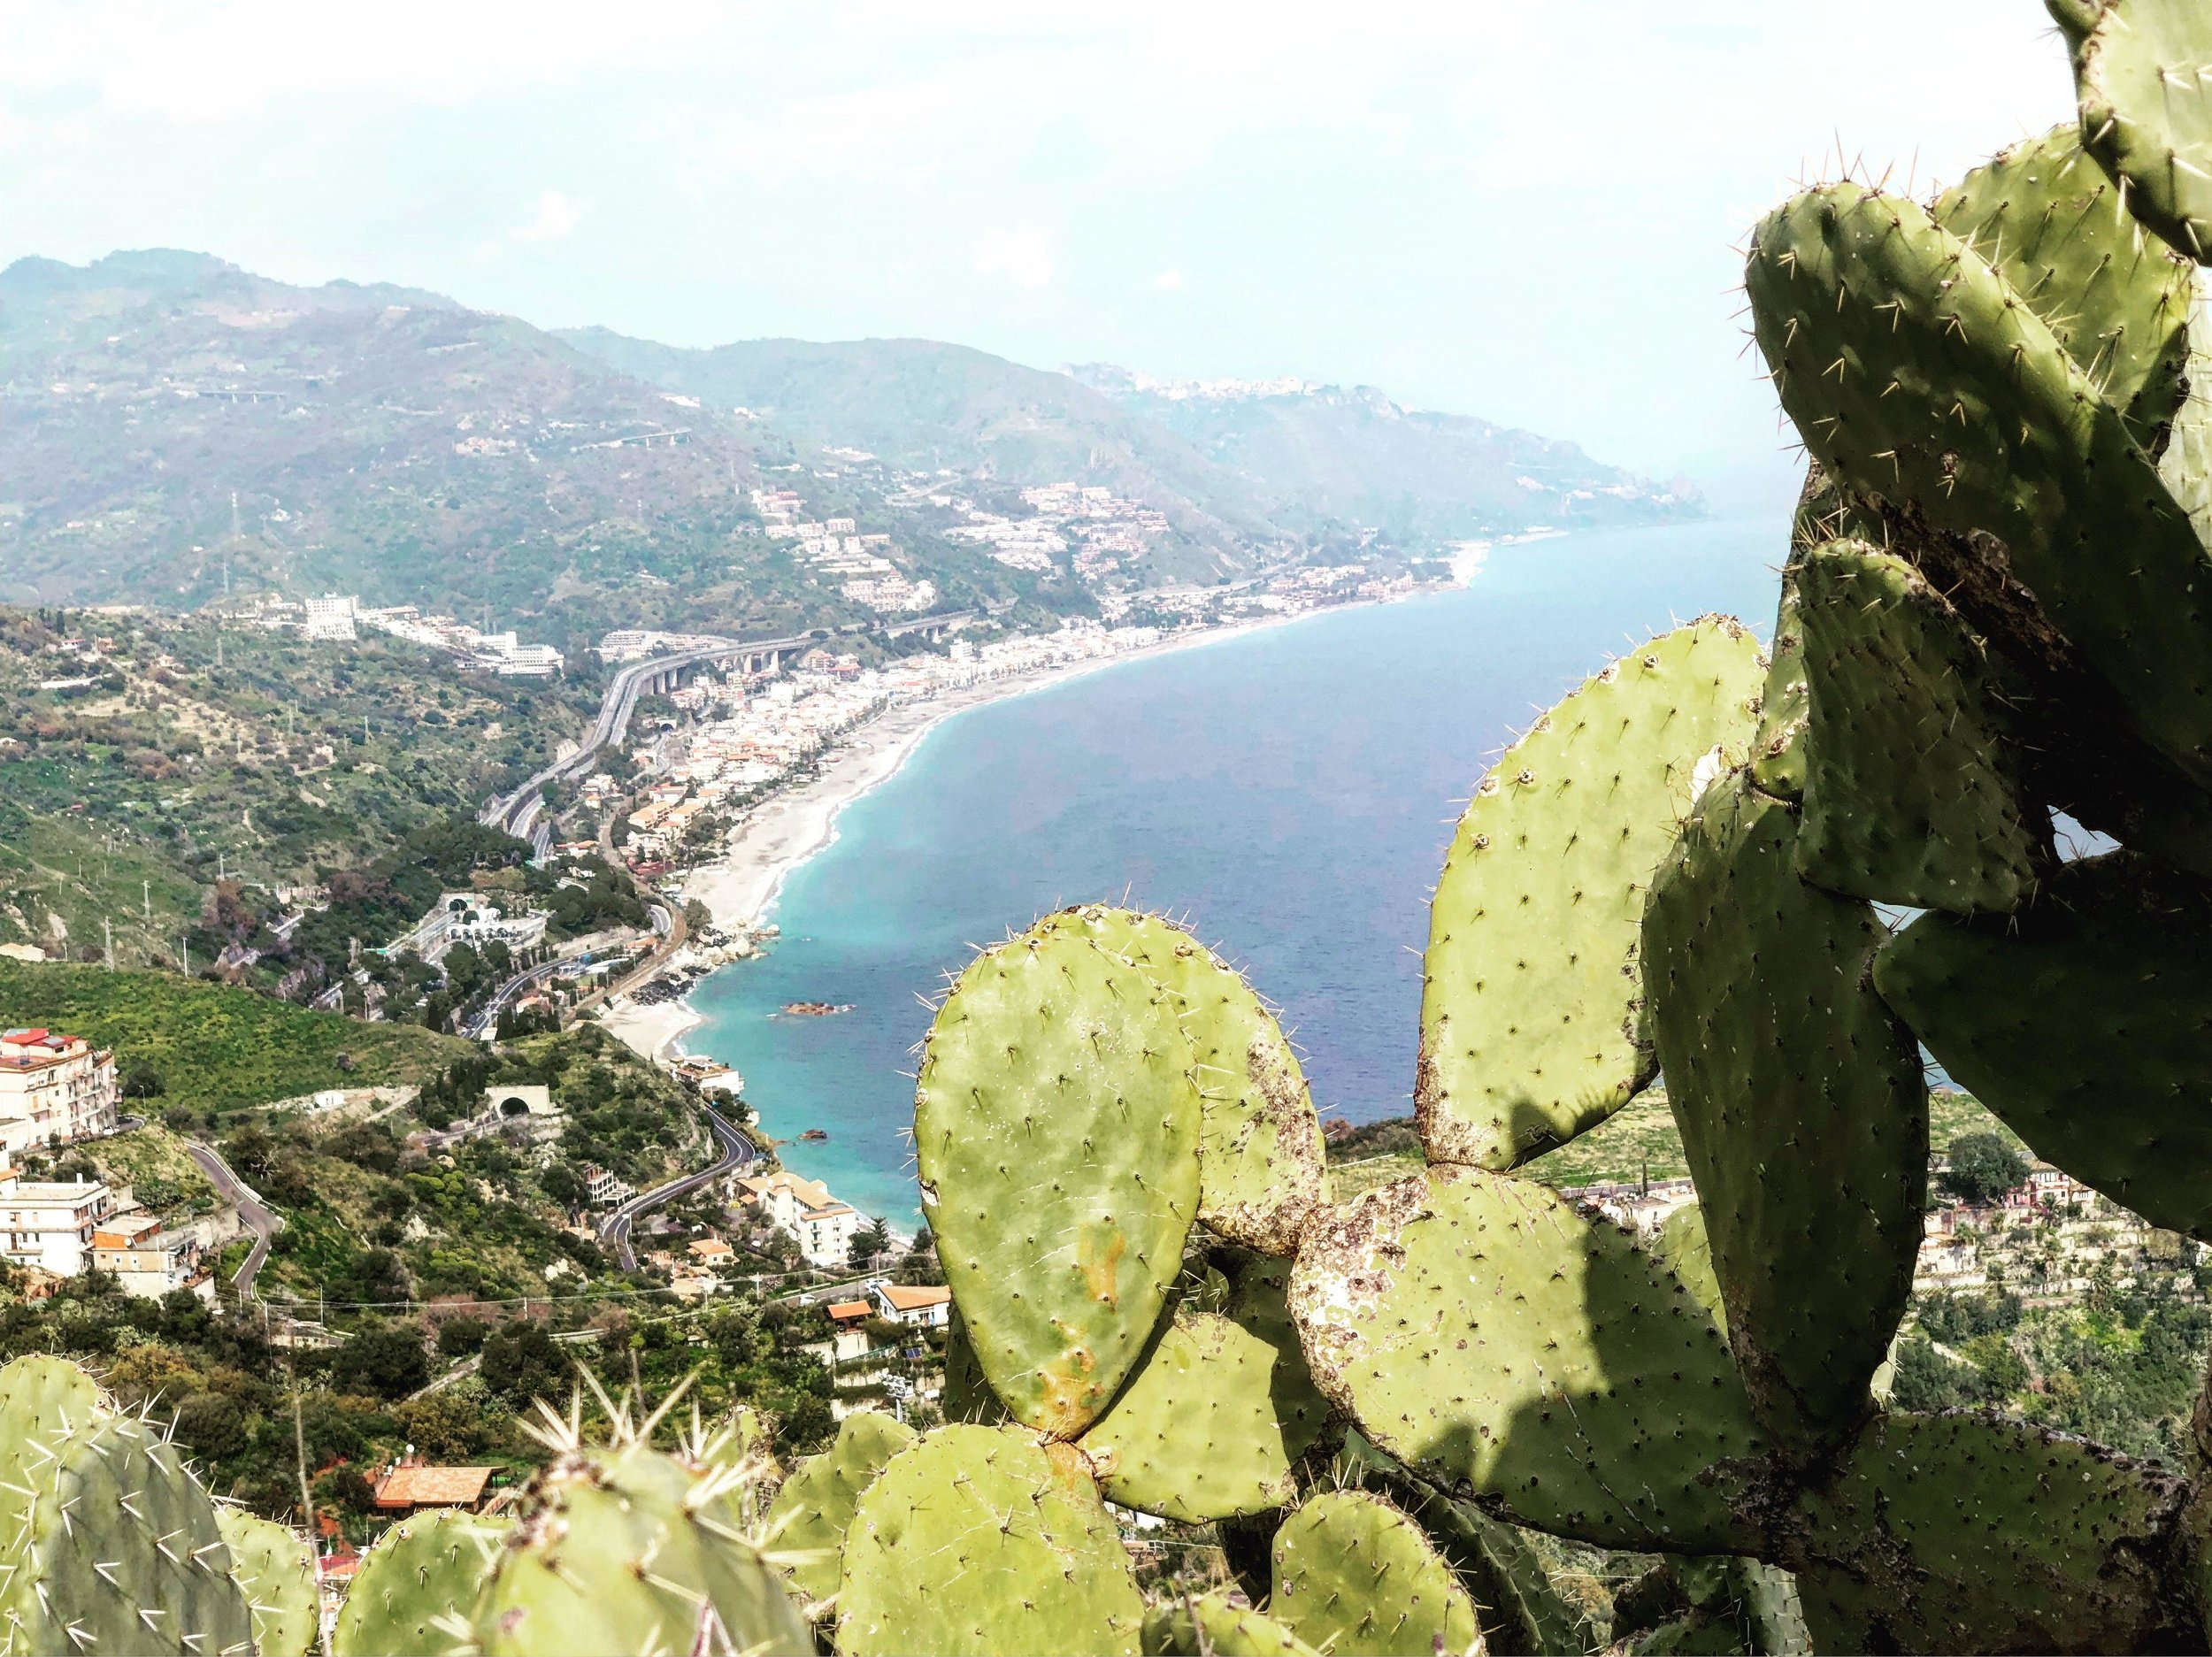 View from the hills of Taormina Sicily